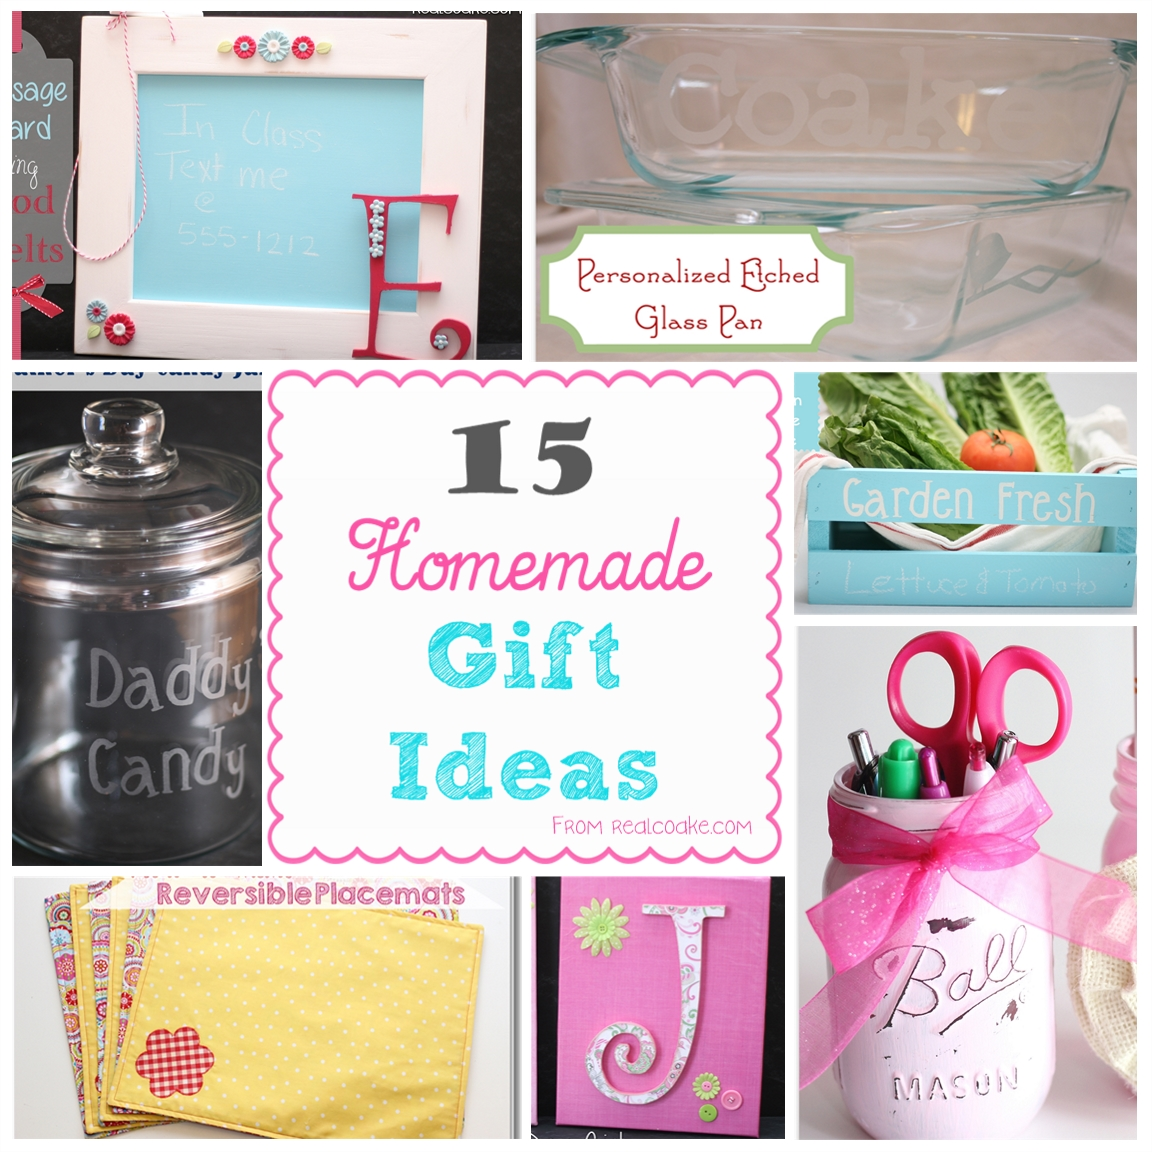 15 homemade gift ideas the real thing with the coake family 15 homemade gift ideas from realcoake negle Image collections